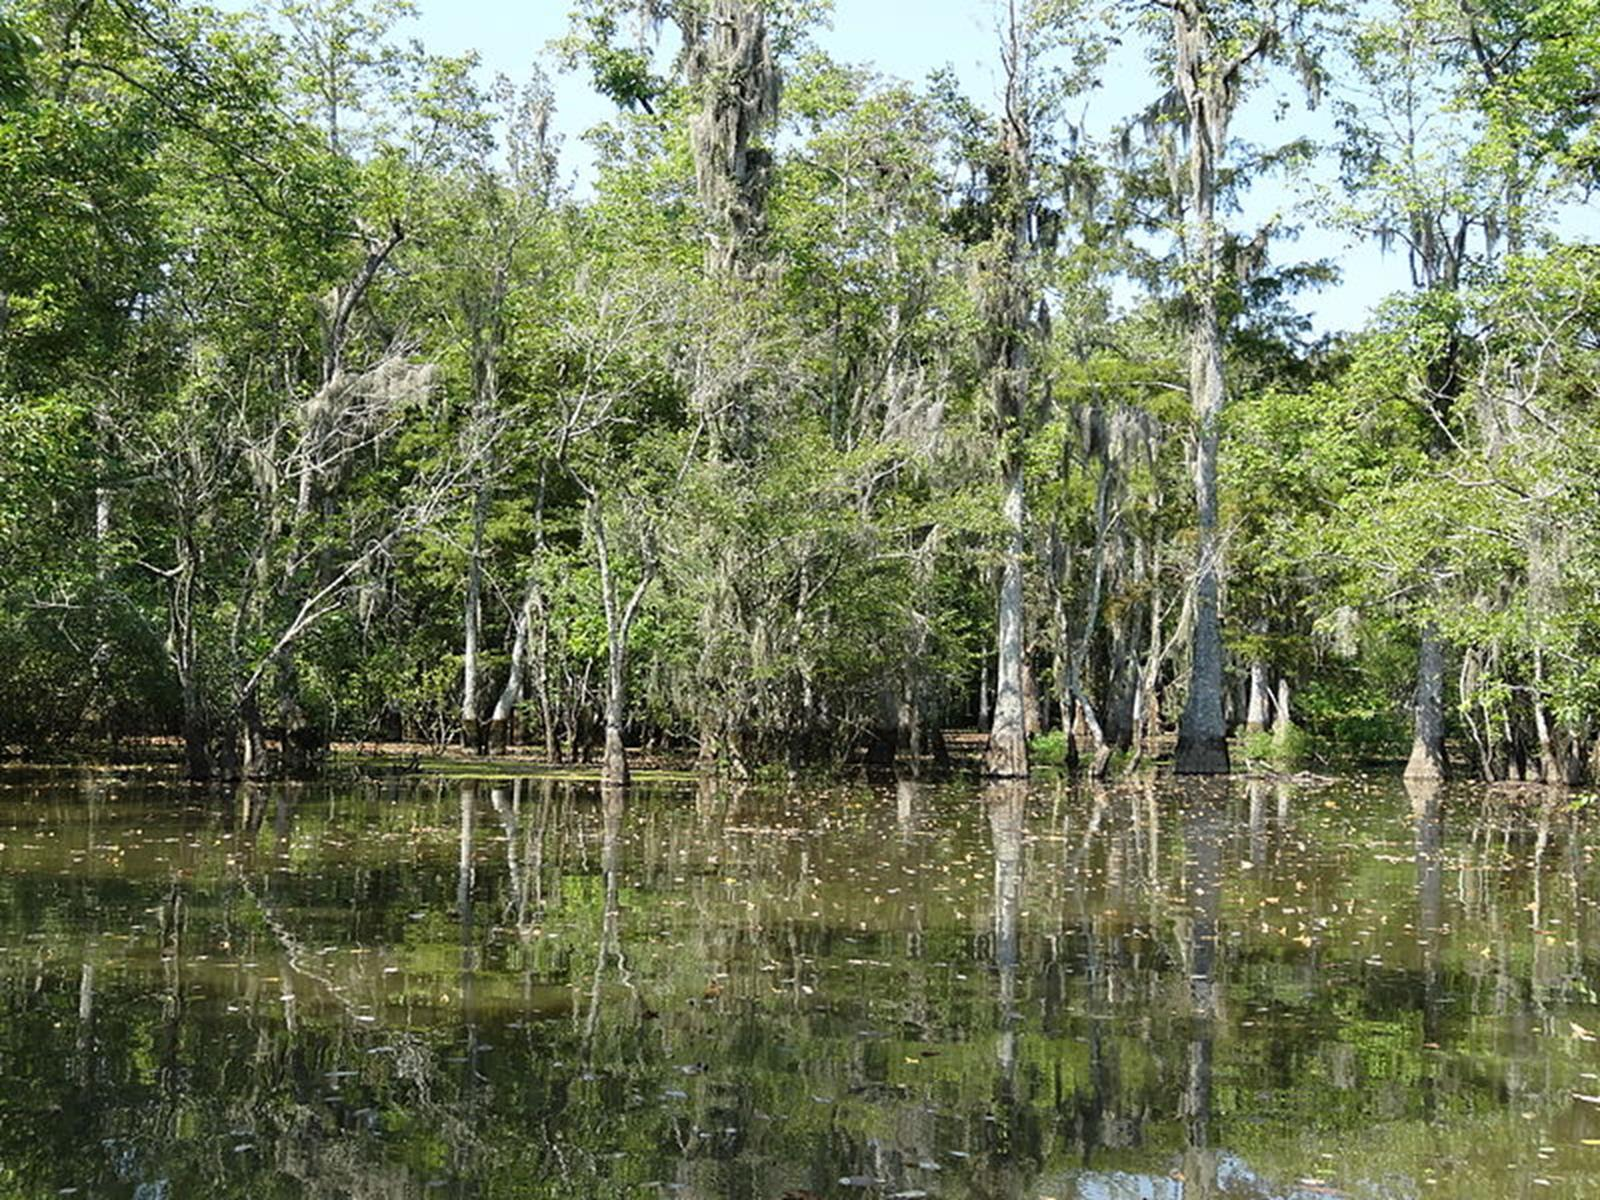 Louisiana Swamp. Credit: Nick Shield